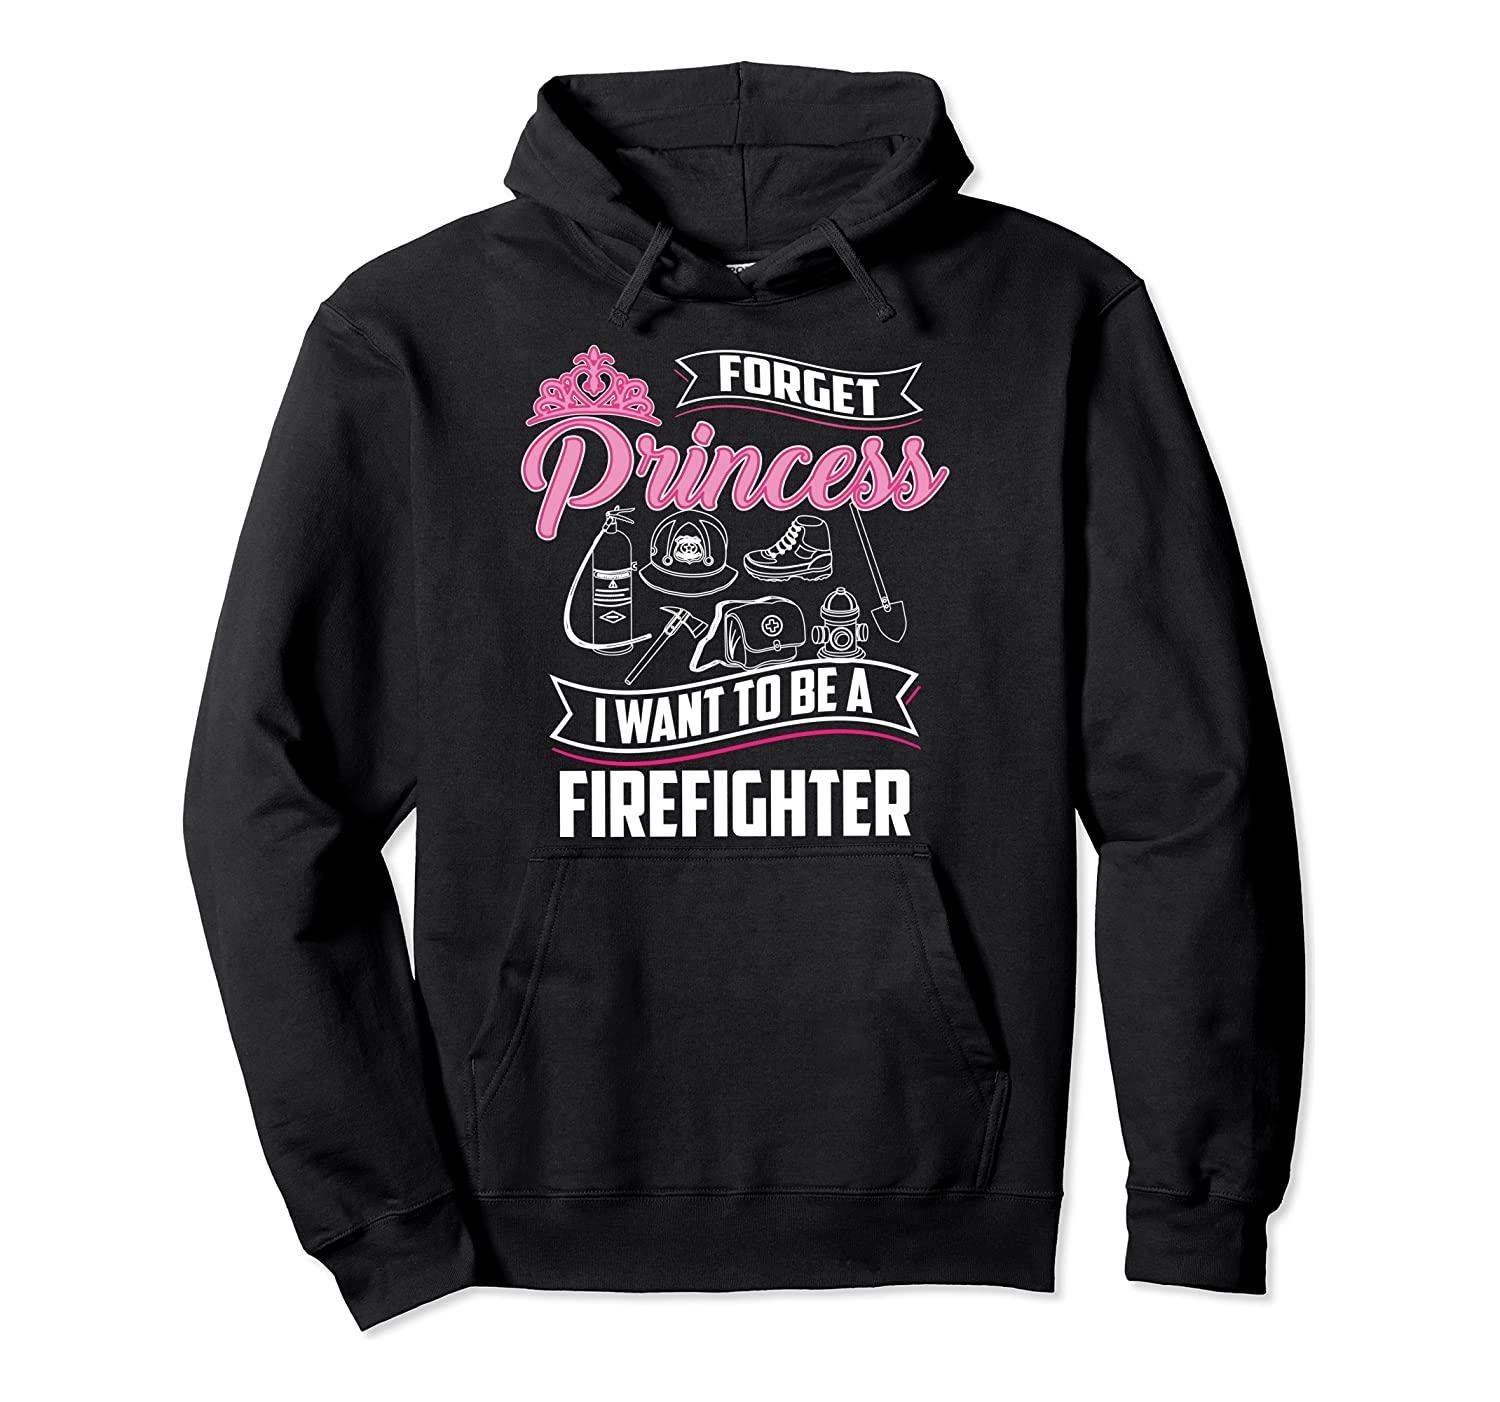 Cool Forget Princess Firefighter | Funny Fire Women Fan Gift Pullover Hoodie Unisex Size S-5XL with Color Black/Grey/Navy/Royal Blue/Dark He